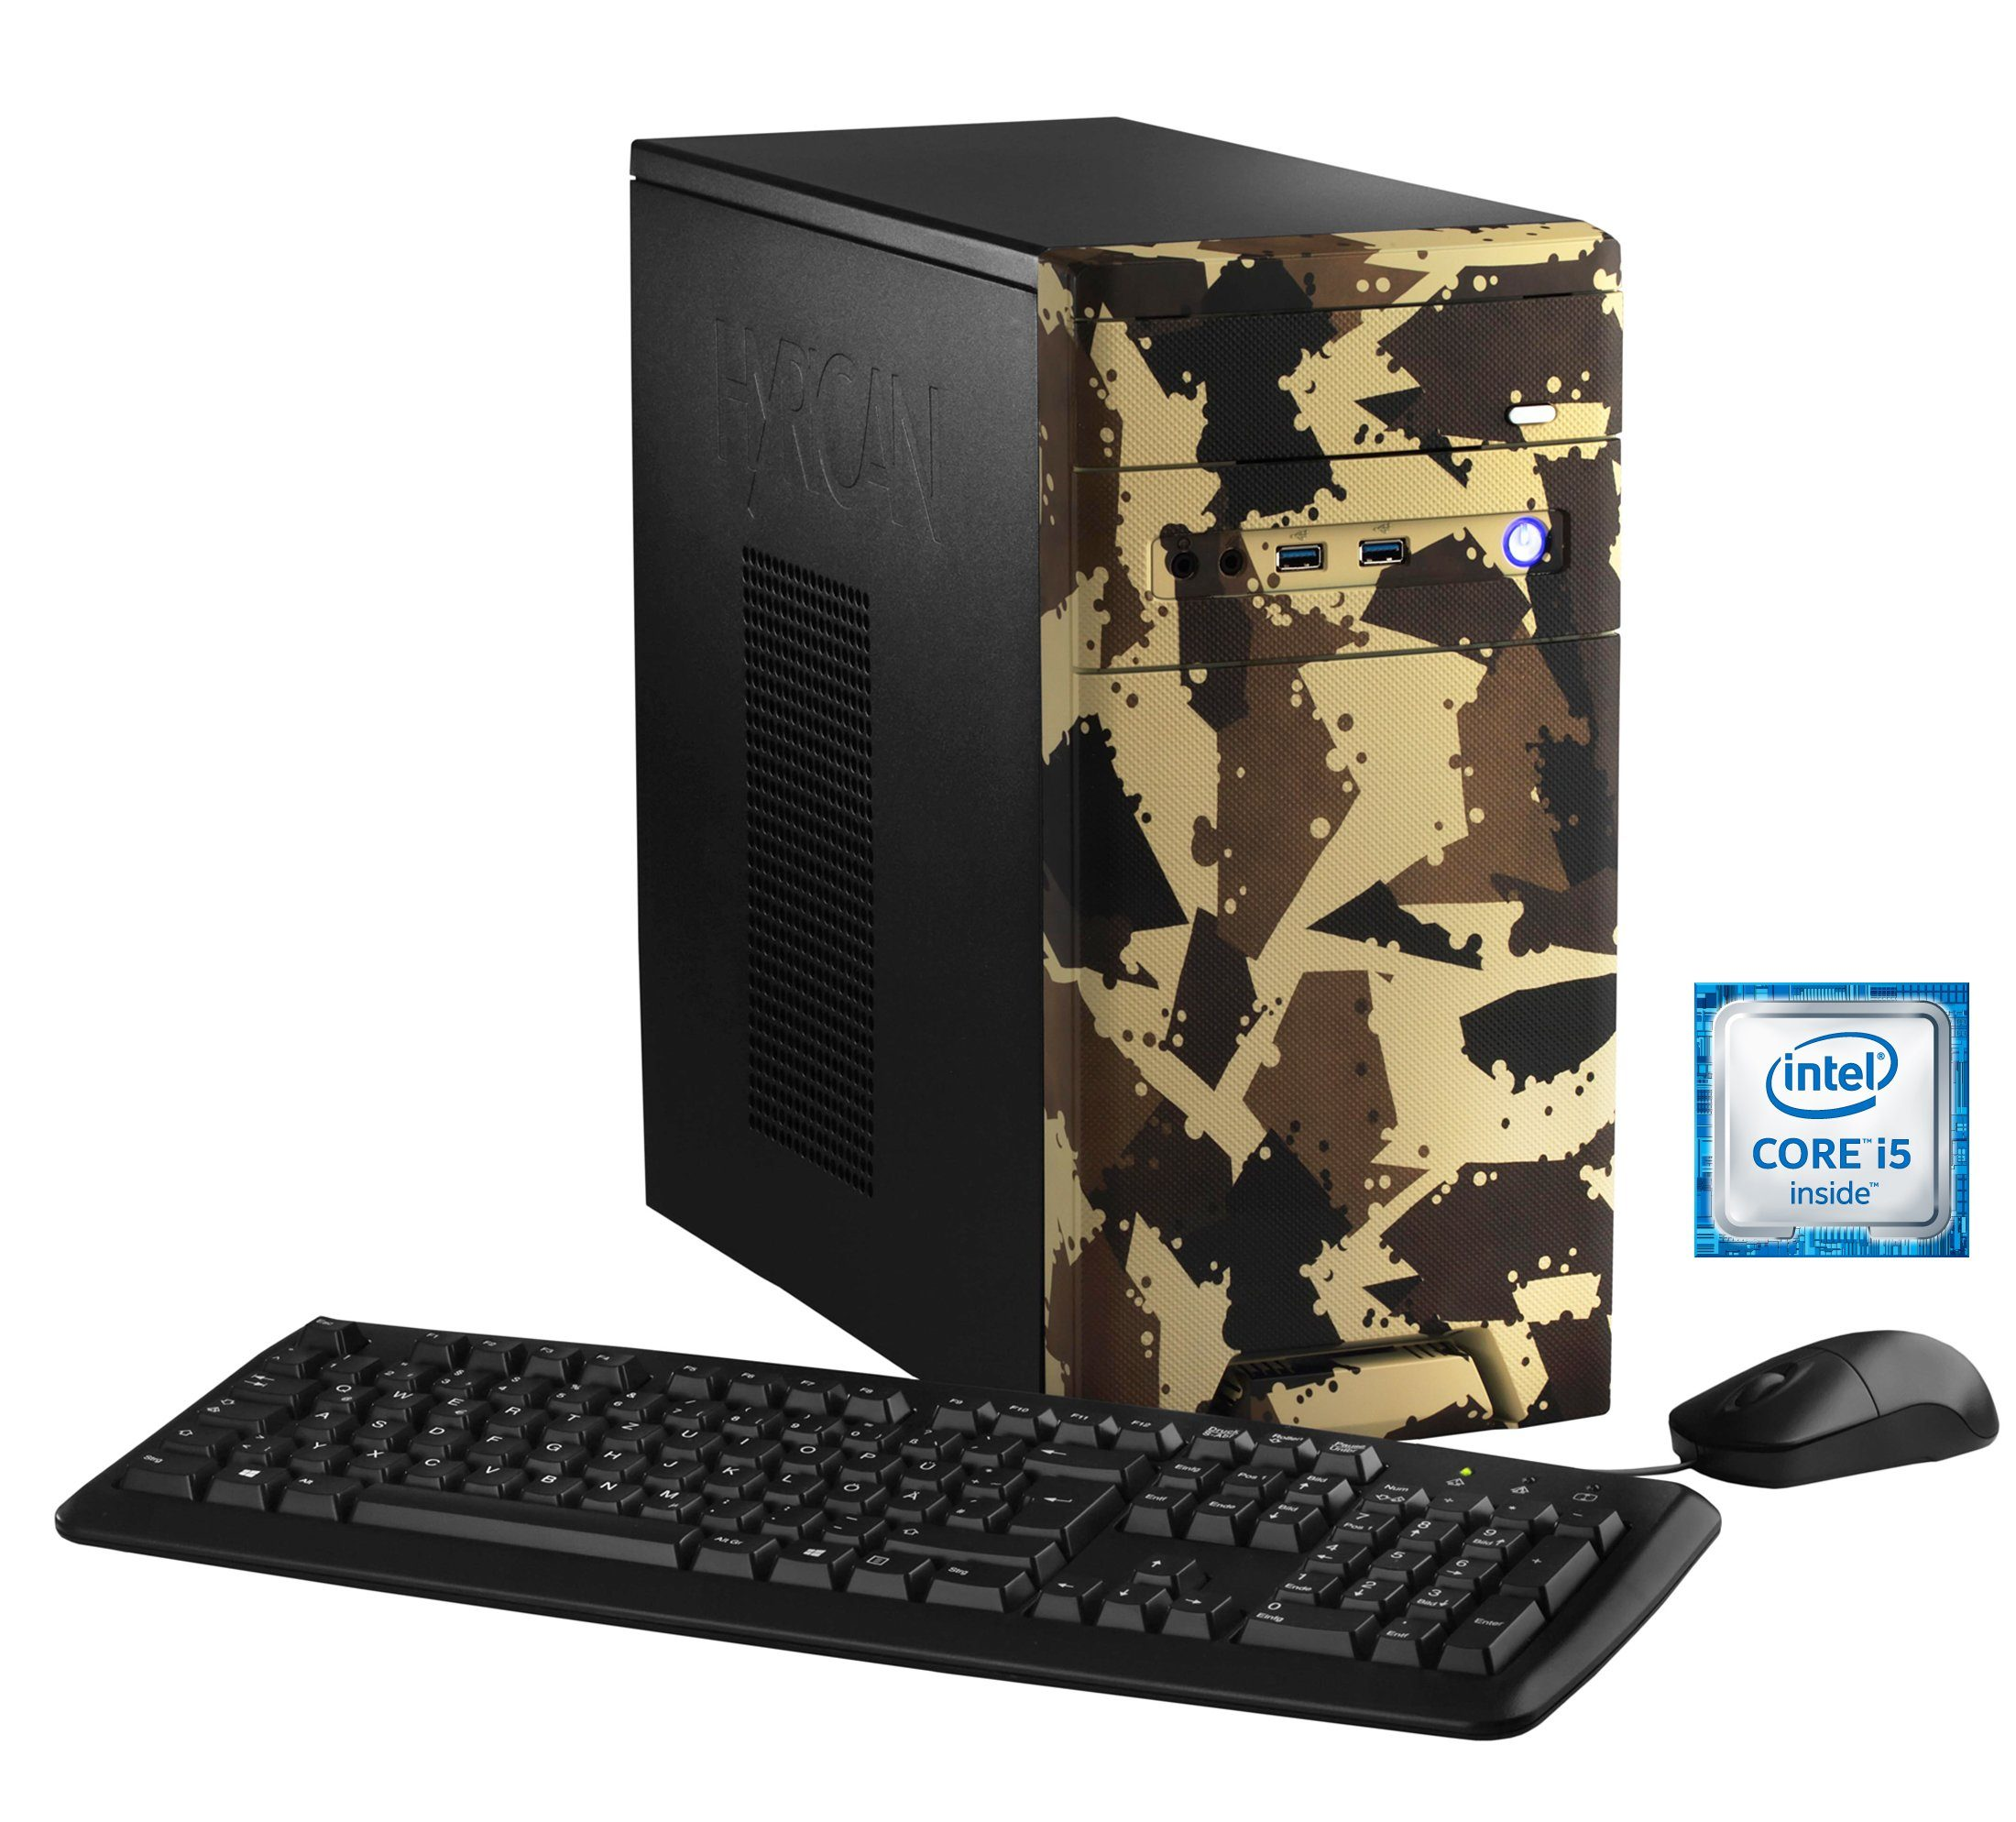 Hyrican Gaming PC Intel® i5-6400, 16GB, SSD + HDD, GeForce® GTX 1050 »CyberGamer desert 5362 «